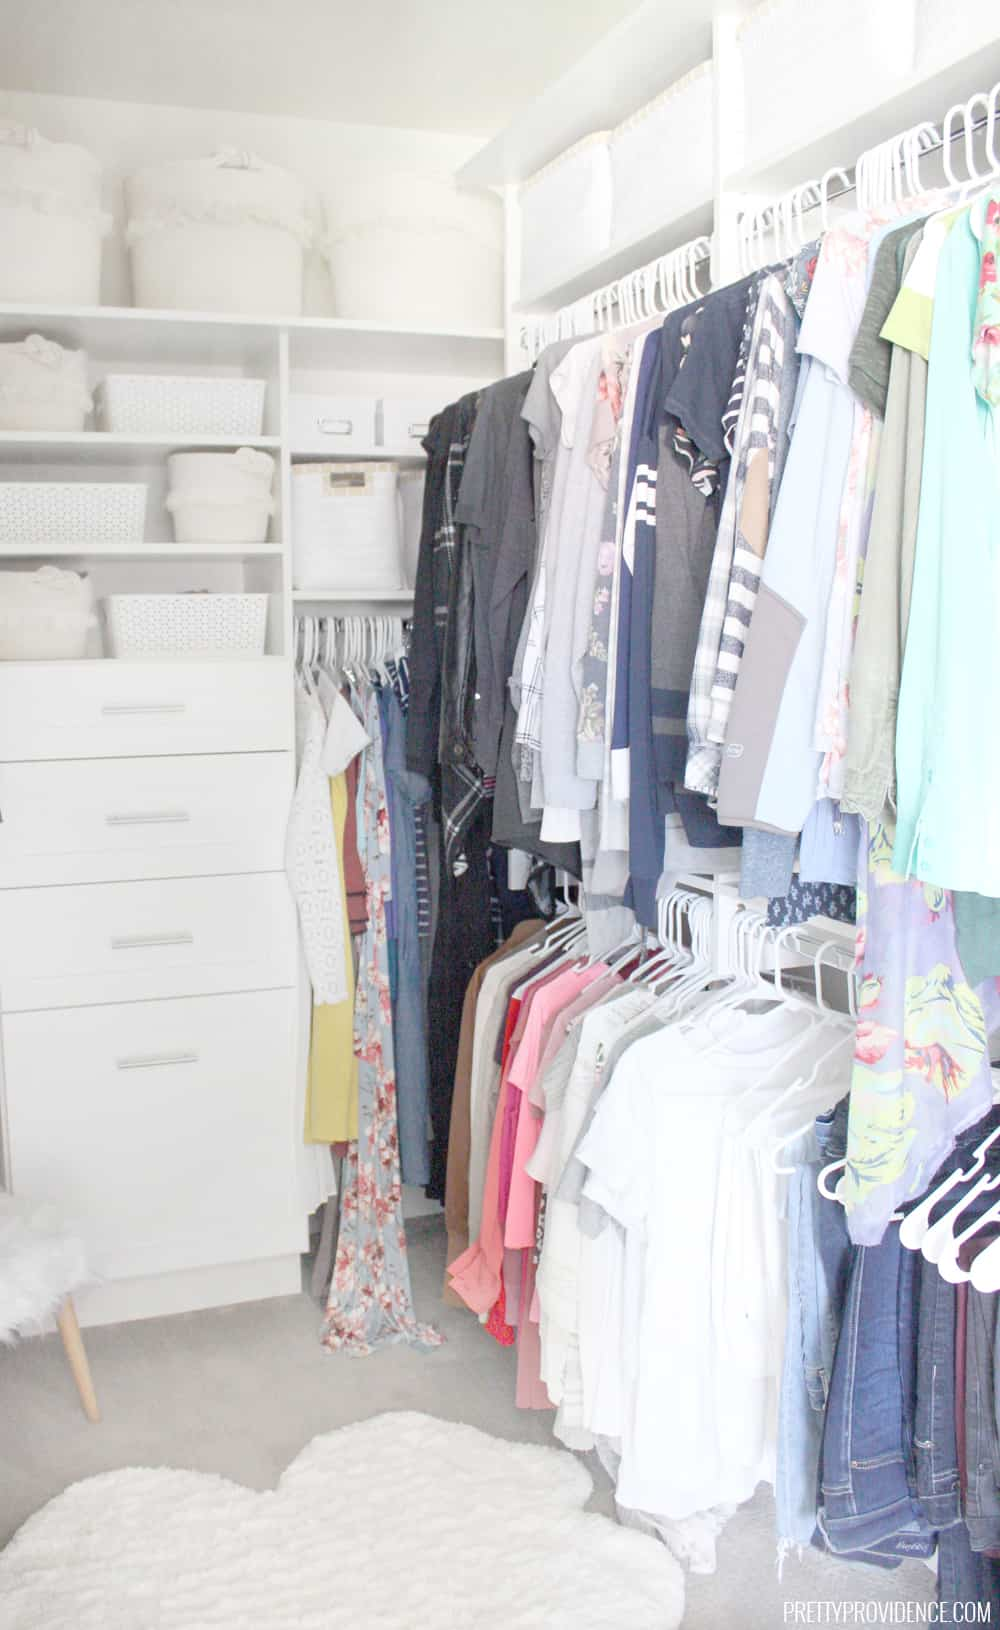 Space Saving Wardrobe Ideas Walk In Closet Ideas How To Make Your Closet Work For You